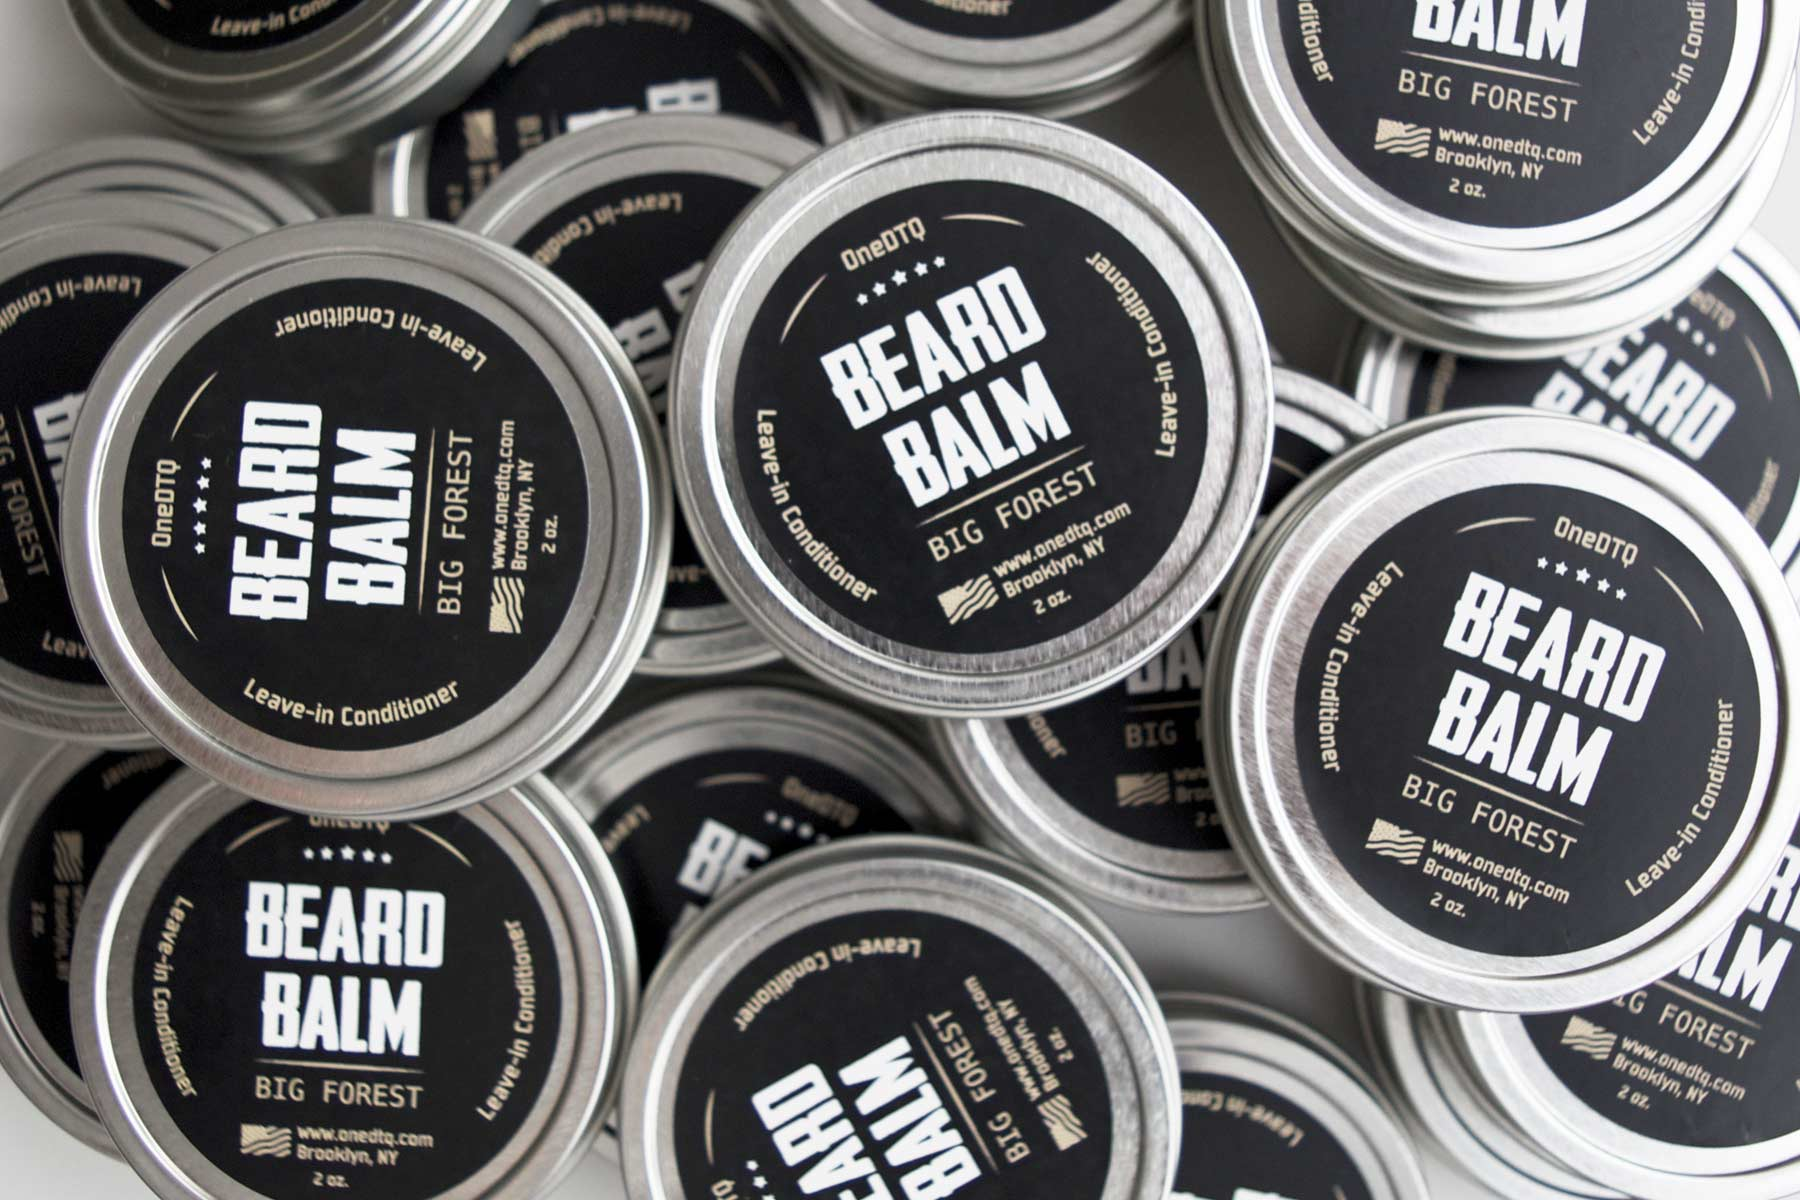 Big Forest Beard Balm - Inventory Day